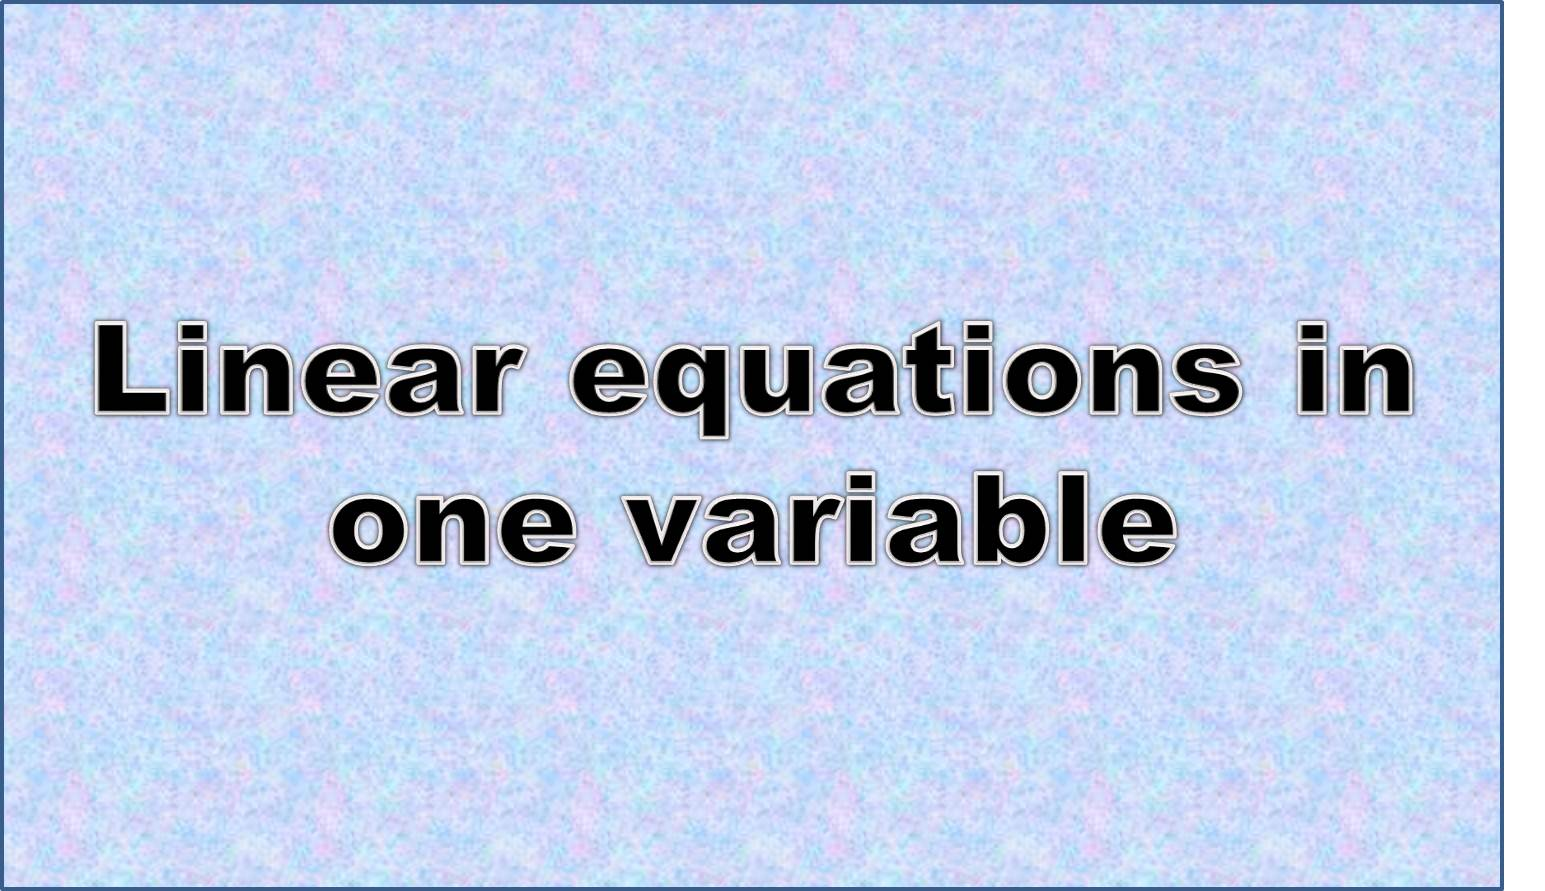 http://study.aisectonline.com/images/Equations with variables on both sides.jpg